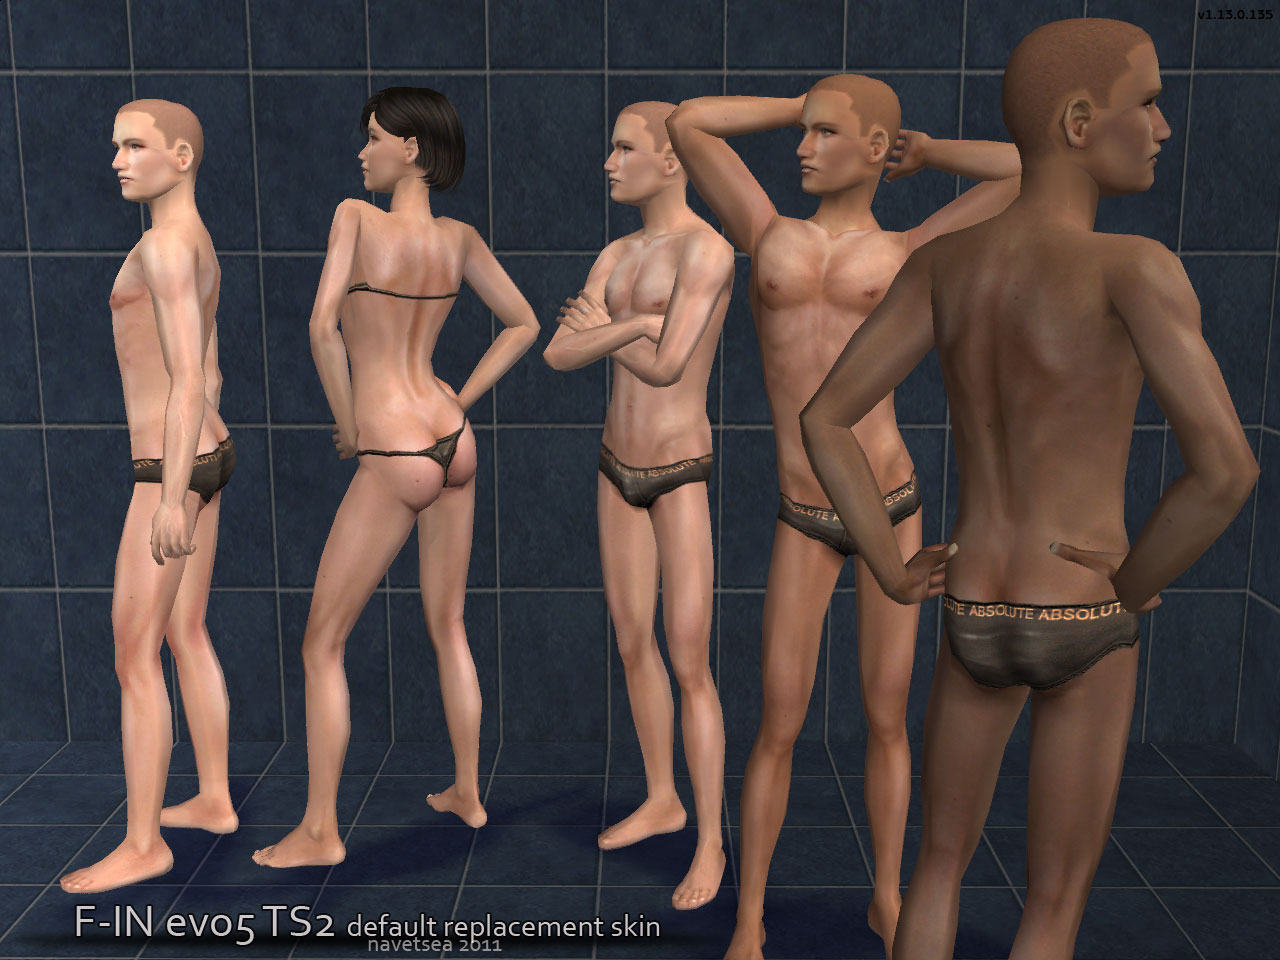 The sims 2 naked pron picture